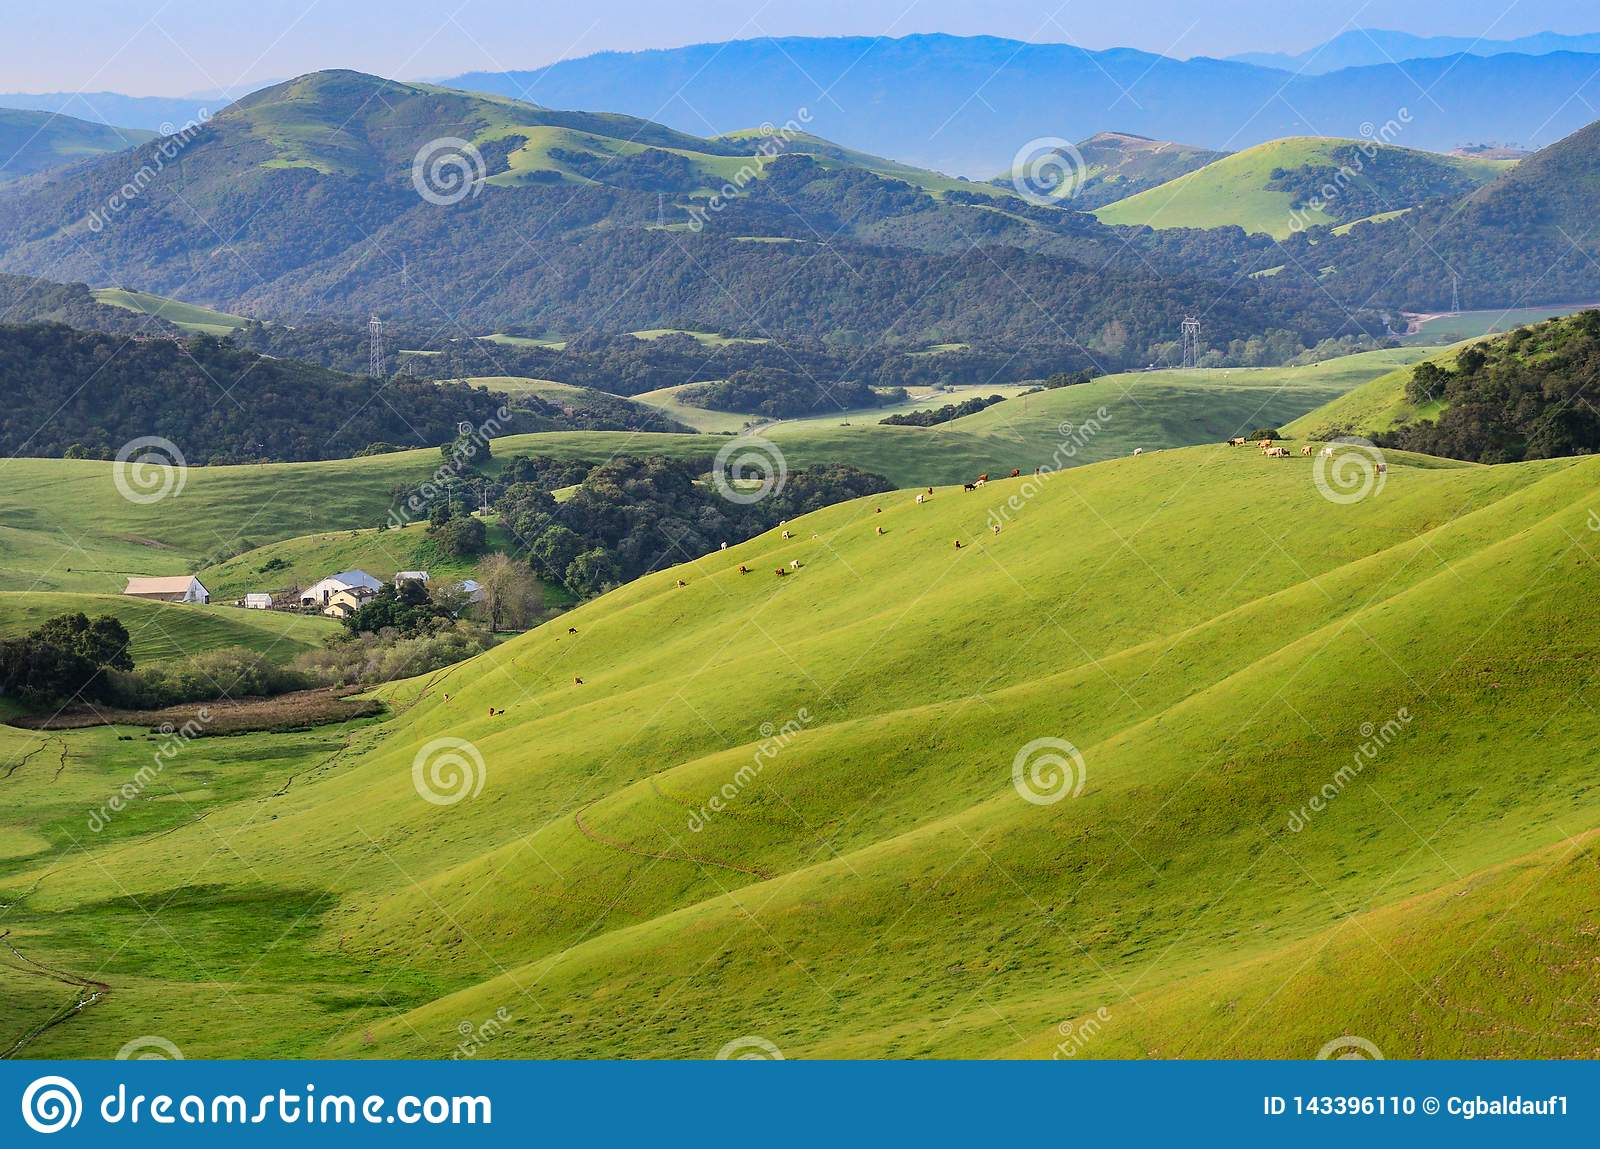 Farmland in Central Valley of California with Cattle